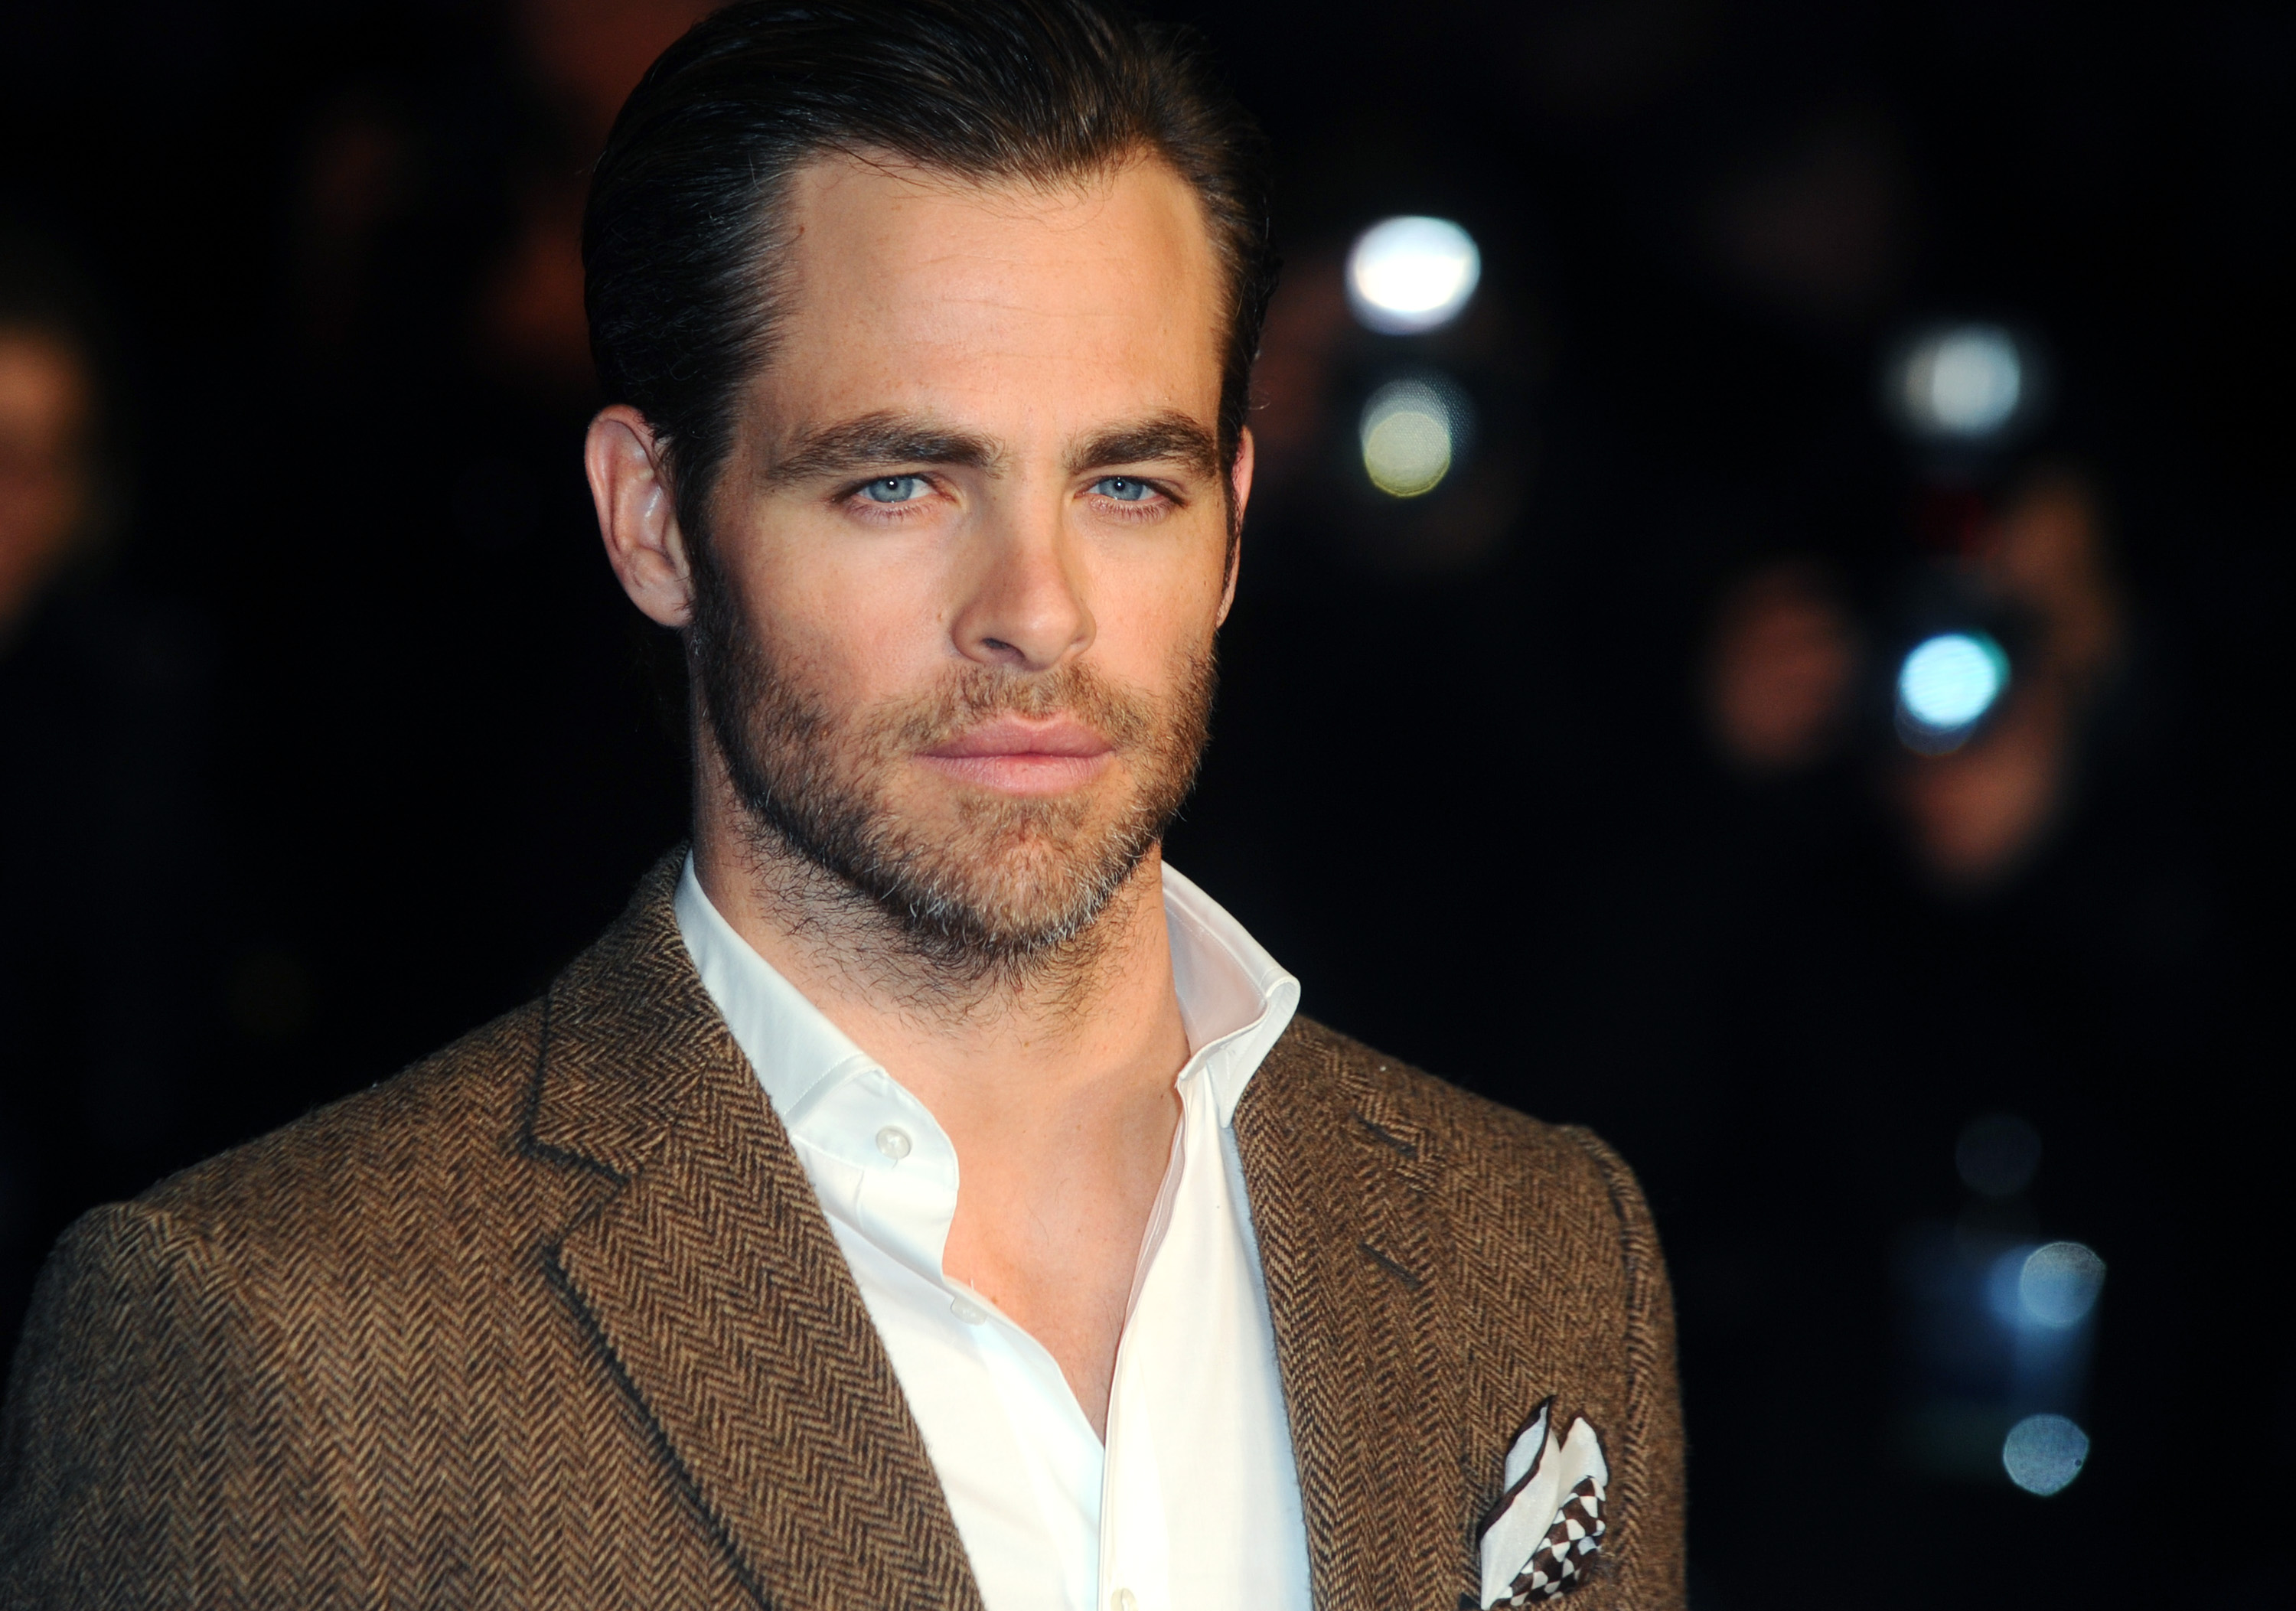 Chris Pine at Vue Leicester Square on Jan. 20, 2014 in London.